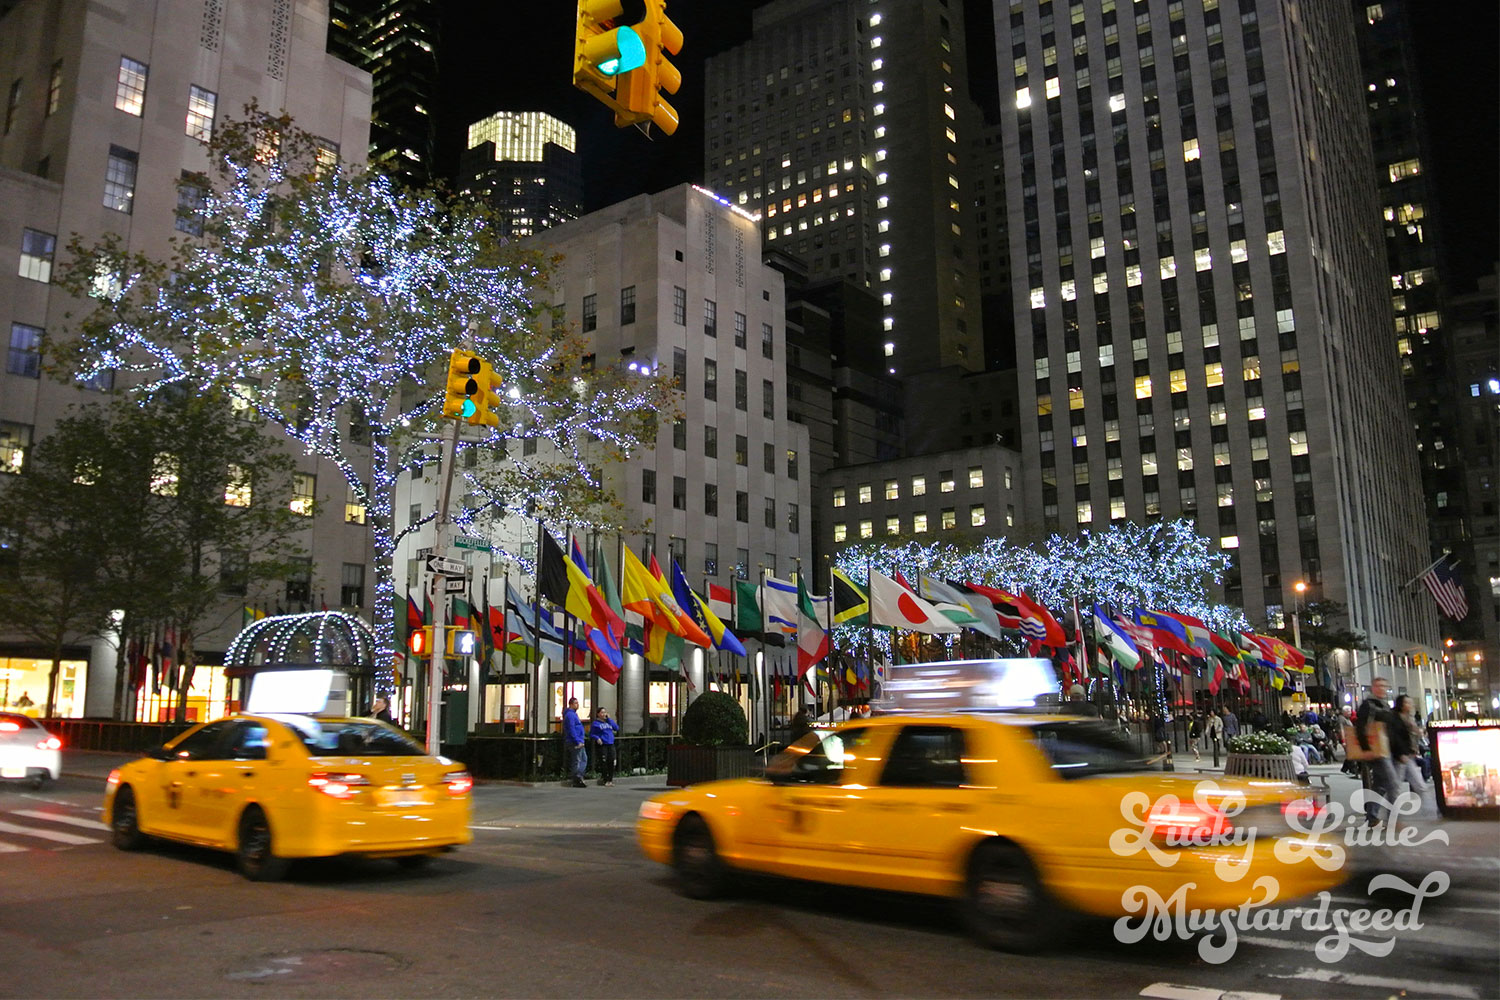 New-York-City-The-Pictures-16